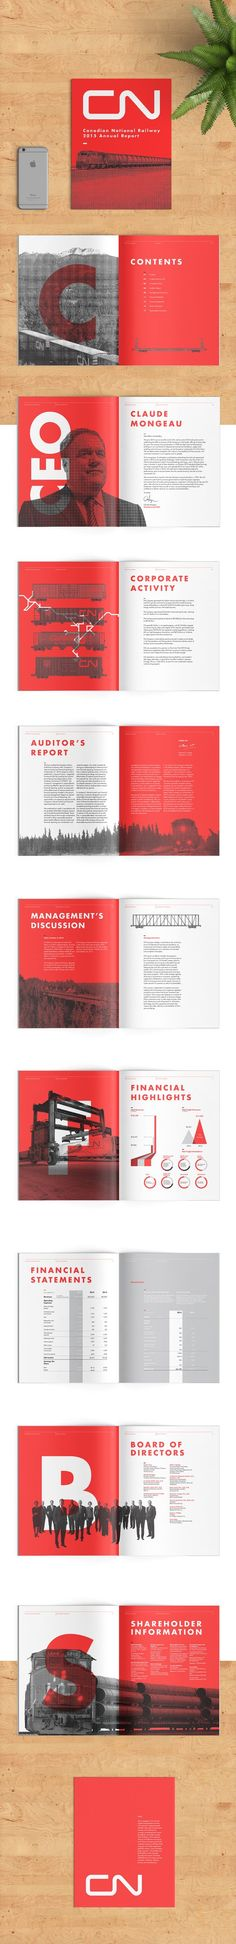 CN Annual Report on Behance                                                                                                                                                                                 More: